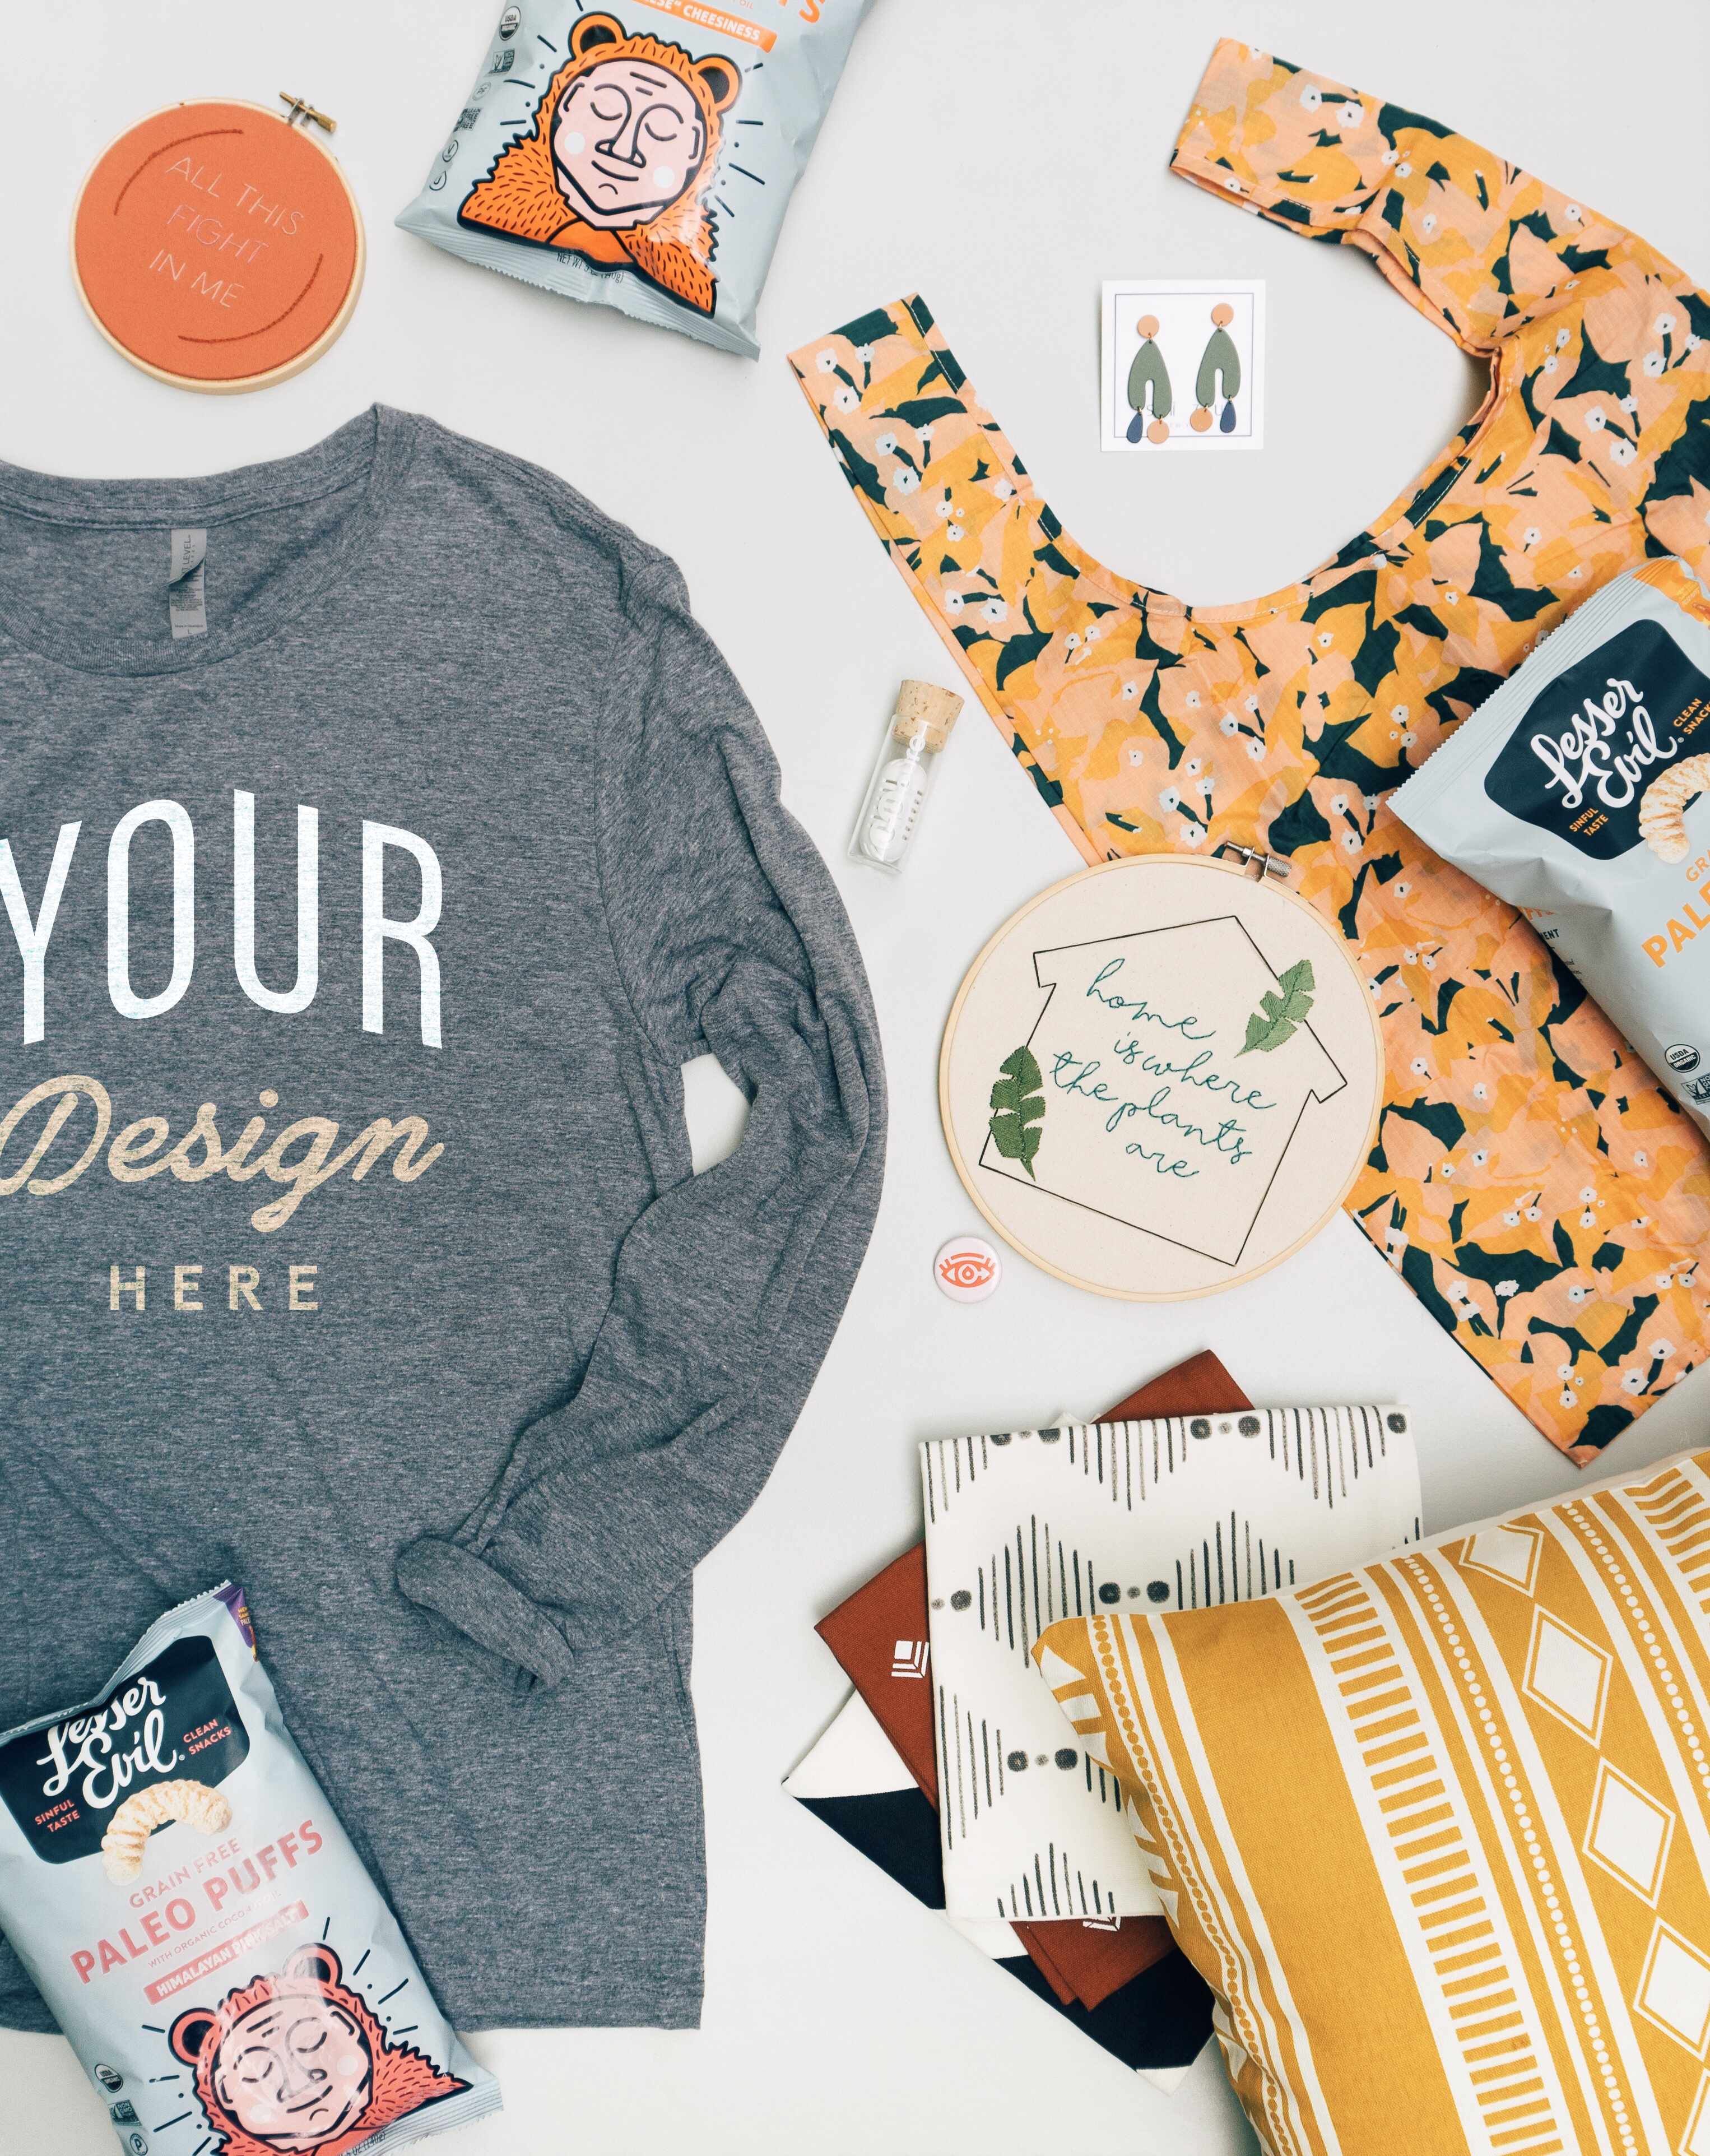 """<img class=""""wp-image-3408"""" style=""""width: 30px;"""" src=""""https://blog.bonfire.com/wp-content/uploads/2018/08/new.png"""" alt=""""""""> <strong>How to Design a Shirt: Updated for 2020</strong>"""